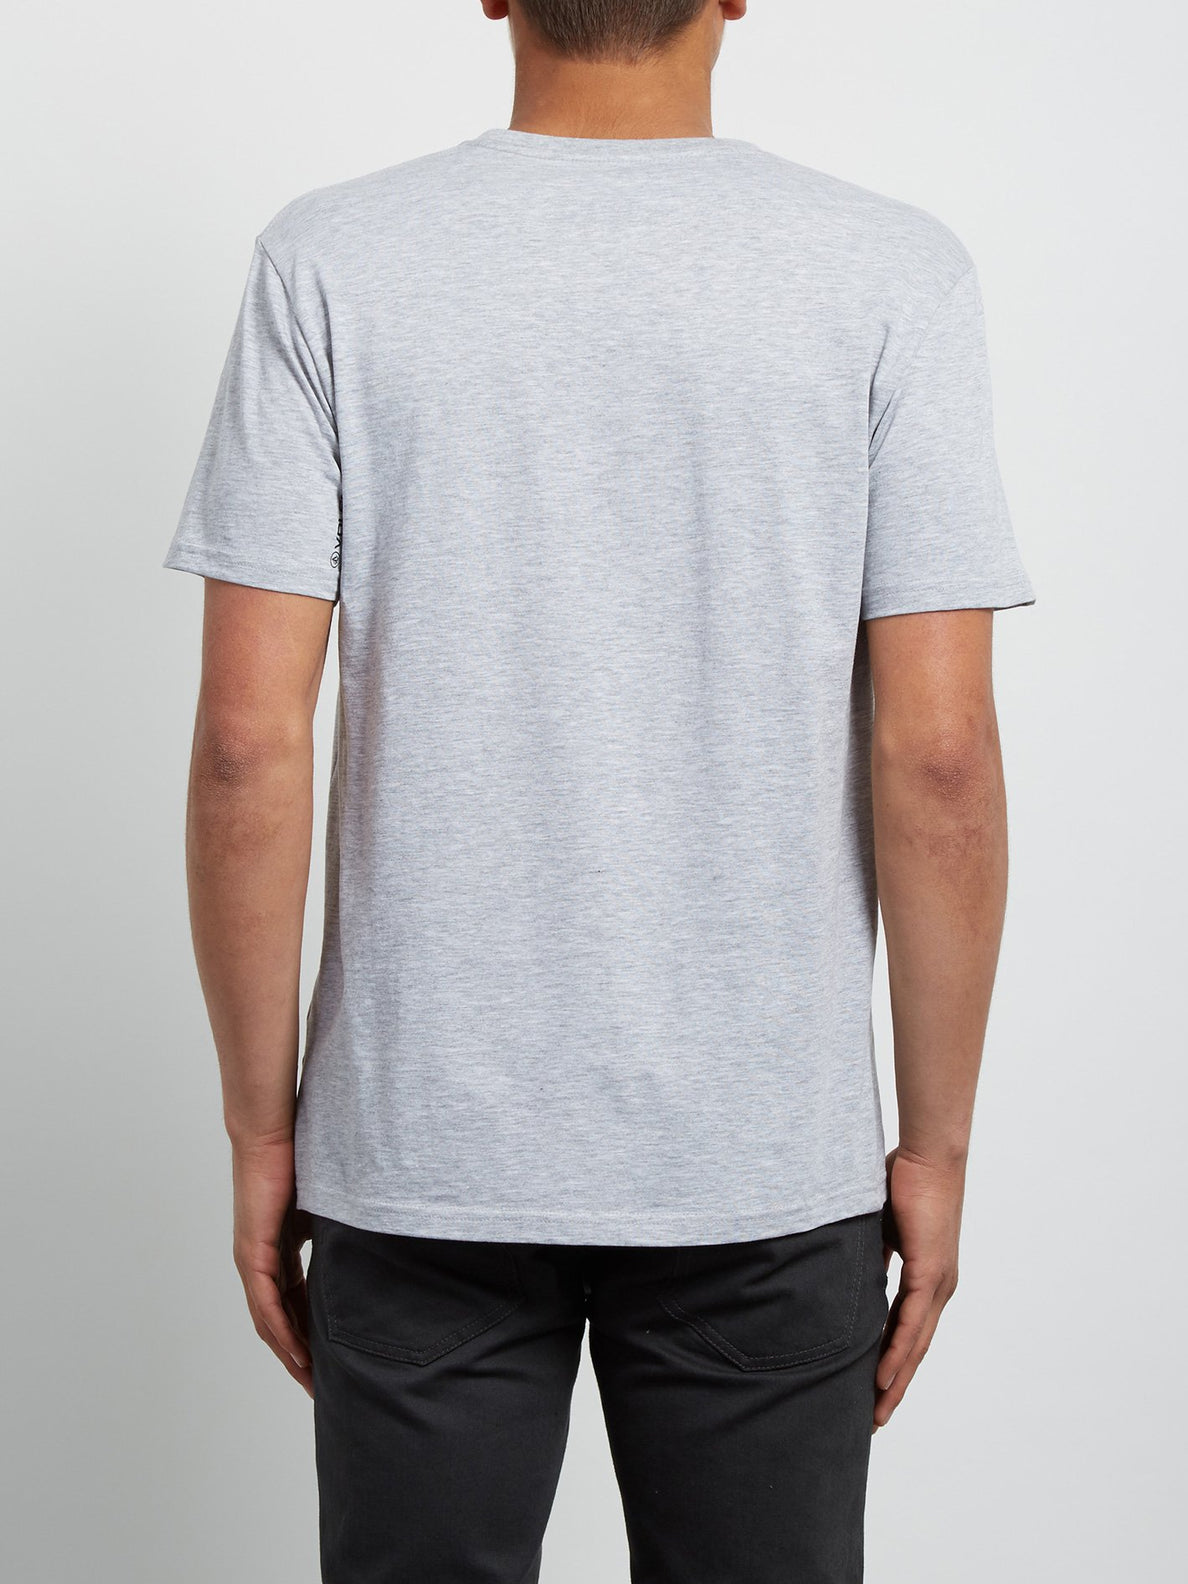 Blanks Tee - Heather Grey